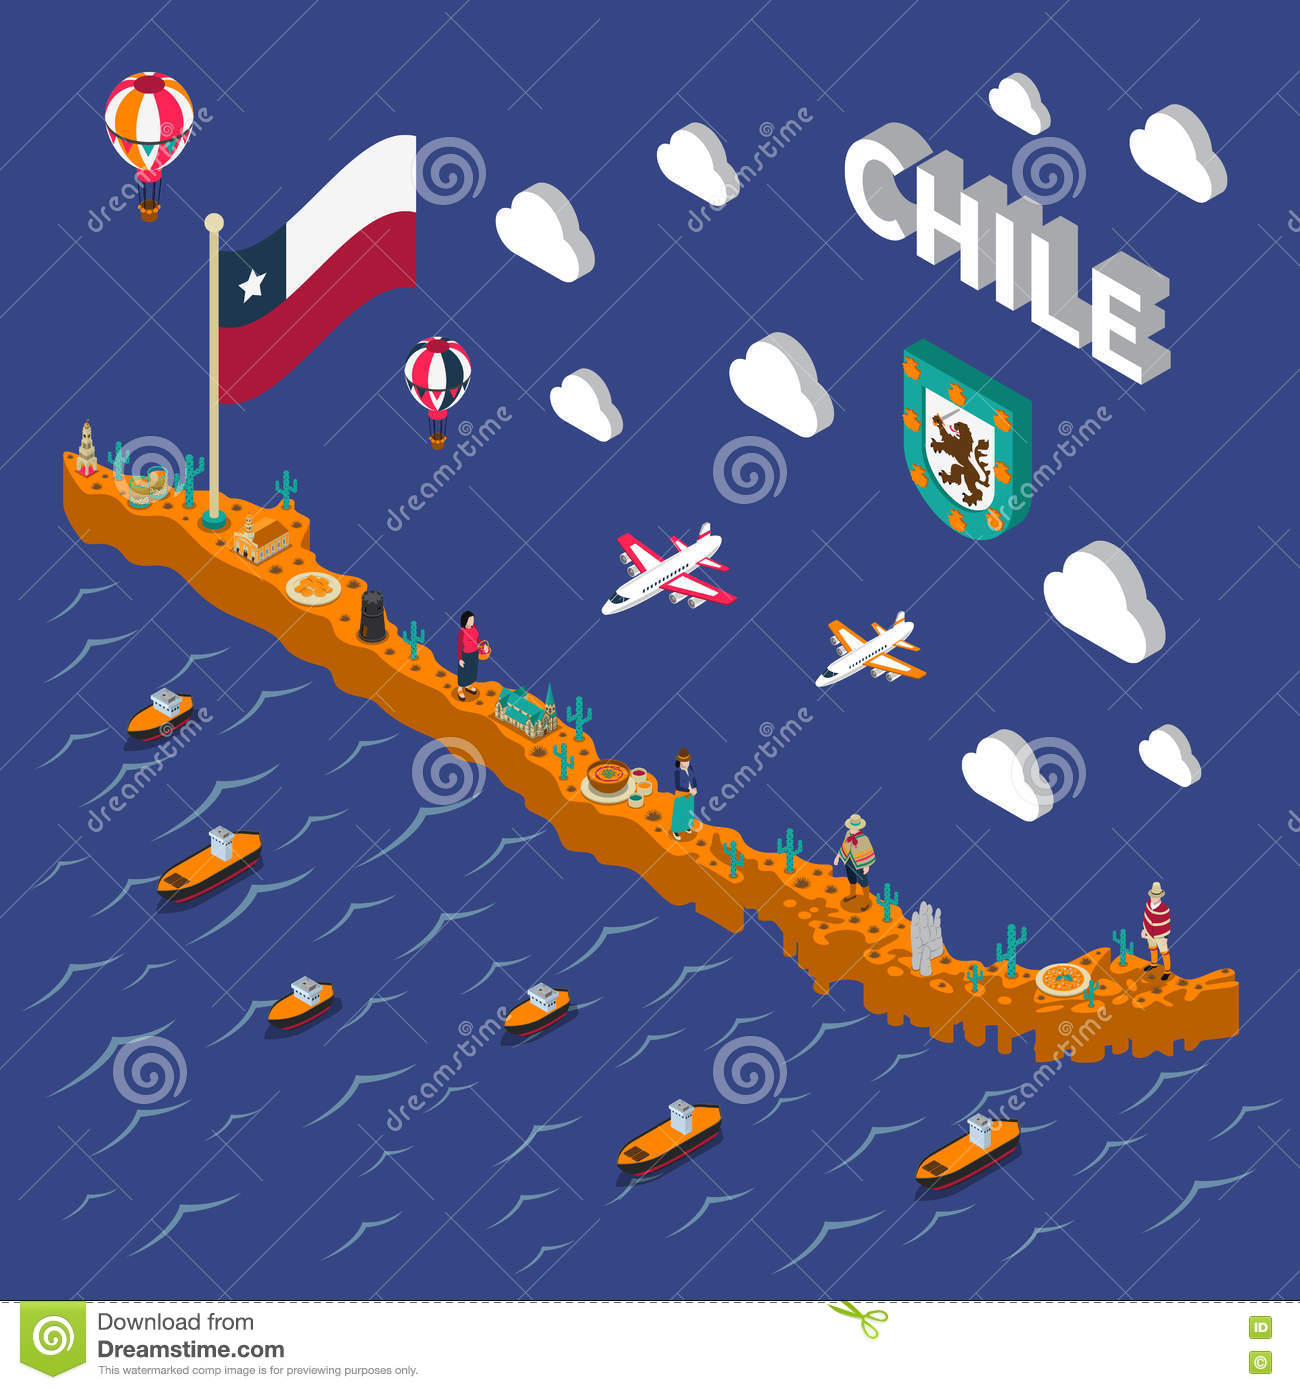 Touristic Attractions Symbols Isometric Chile Map Vector – Chile Tourist Attractions Map